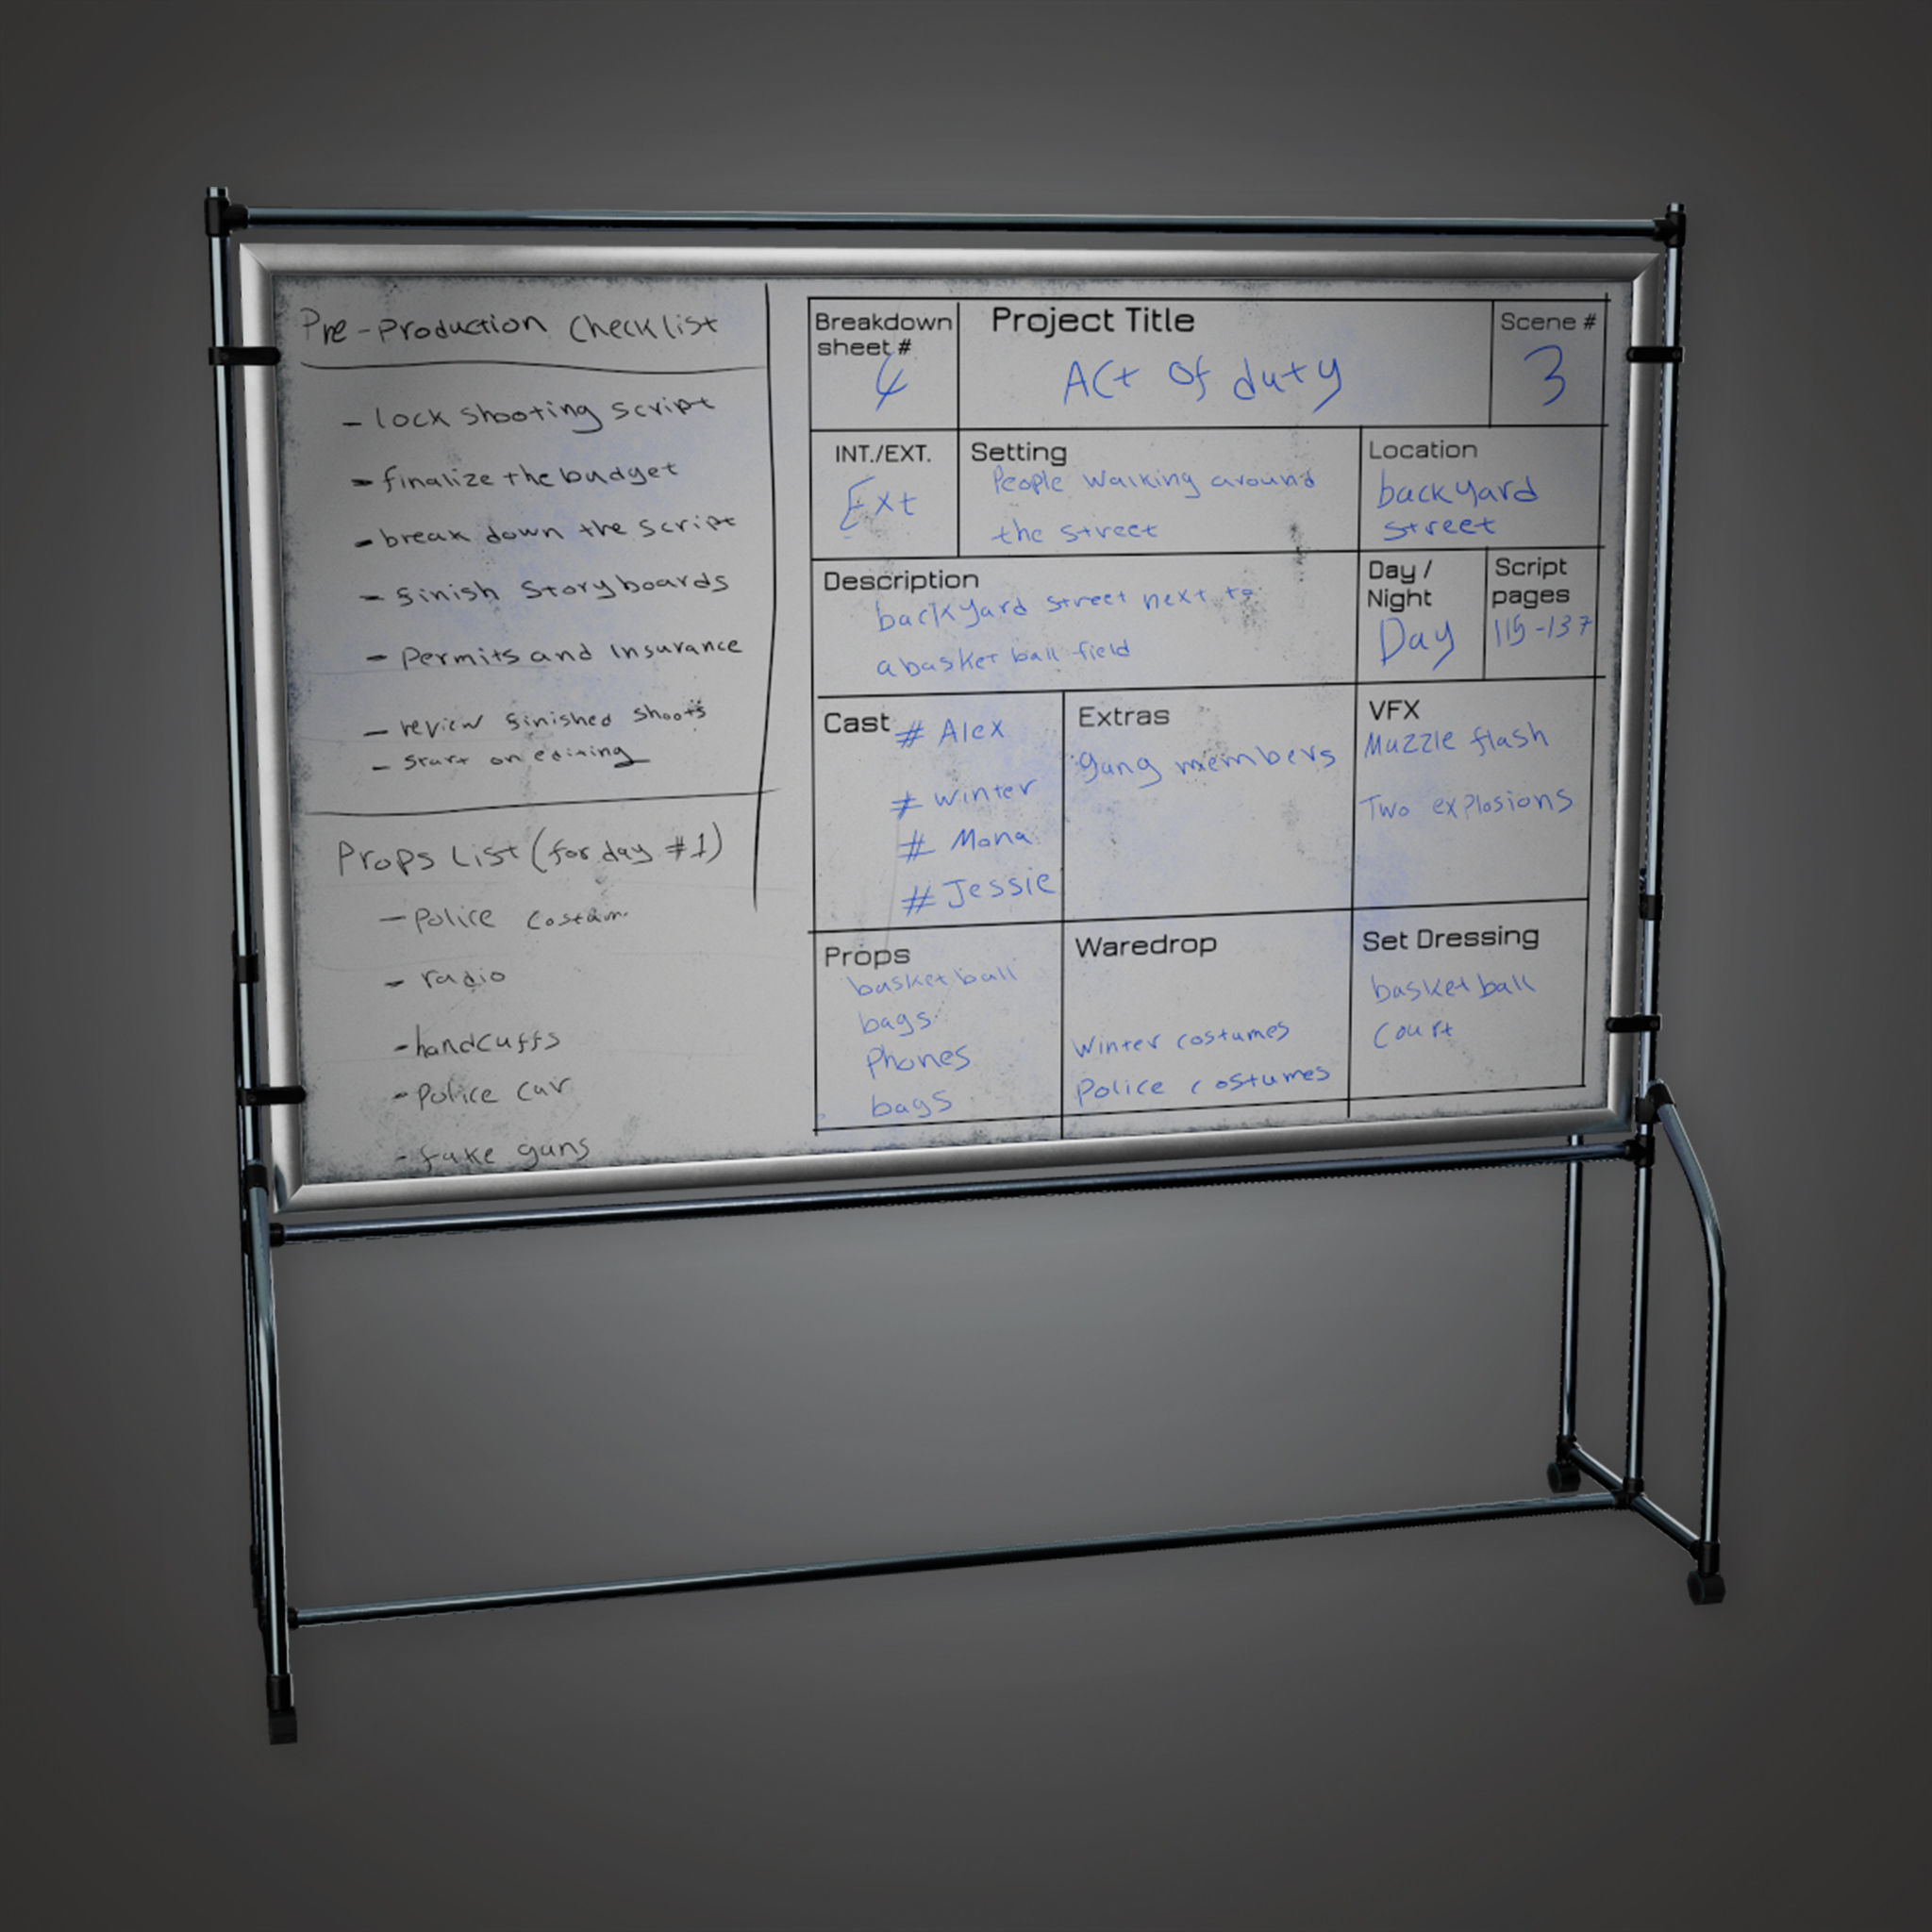 HLW - Schedule White Board - PBR Game Ready